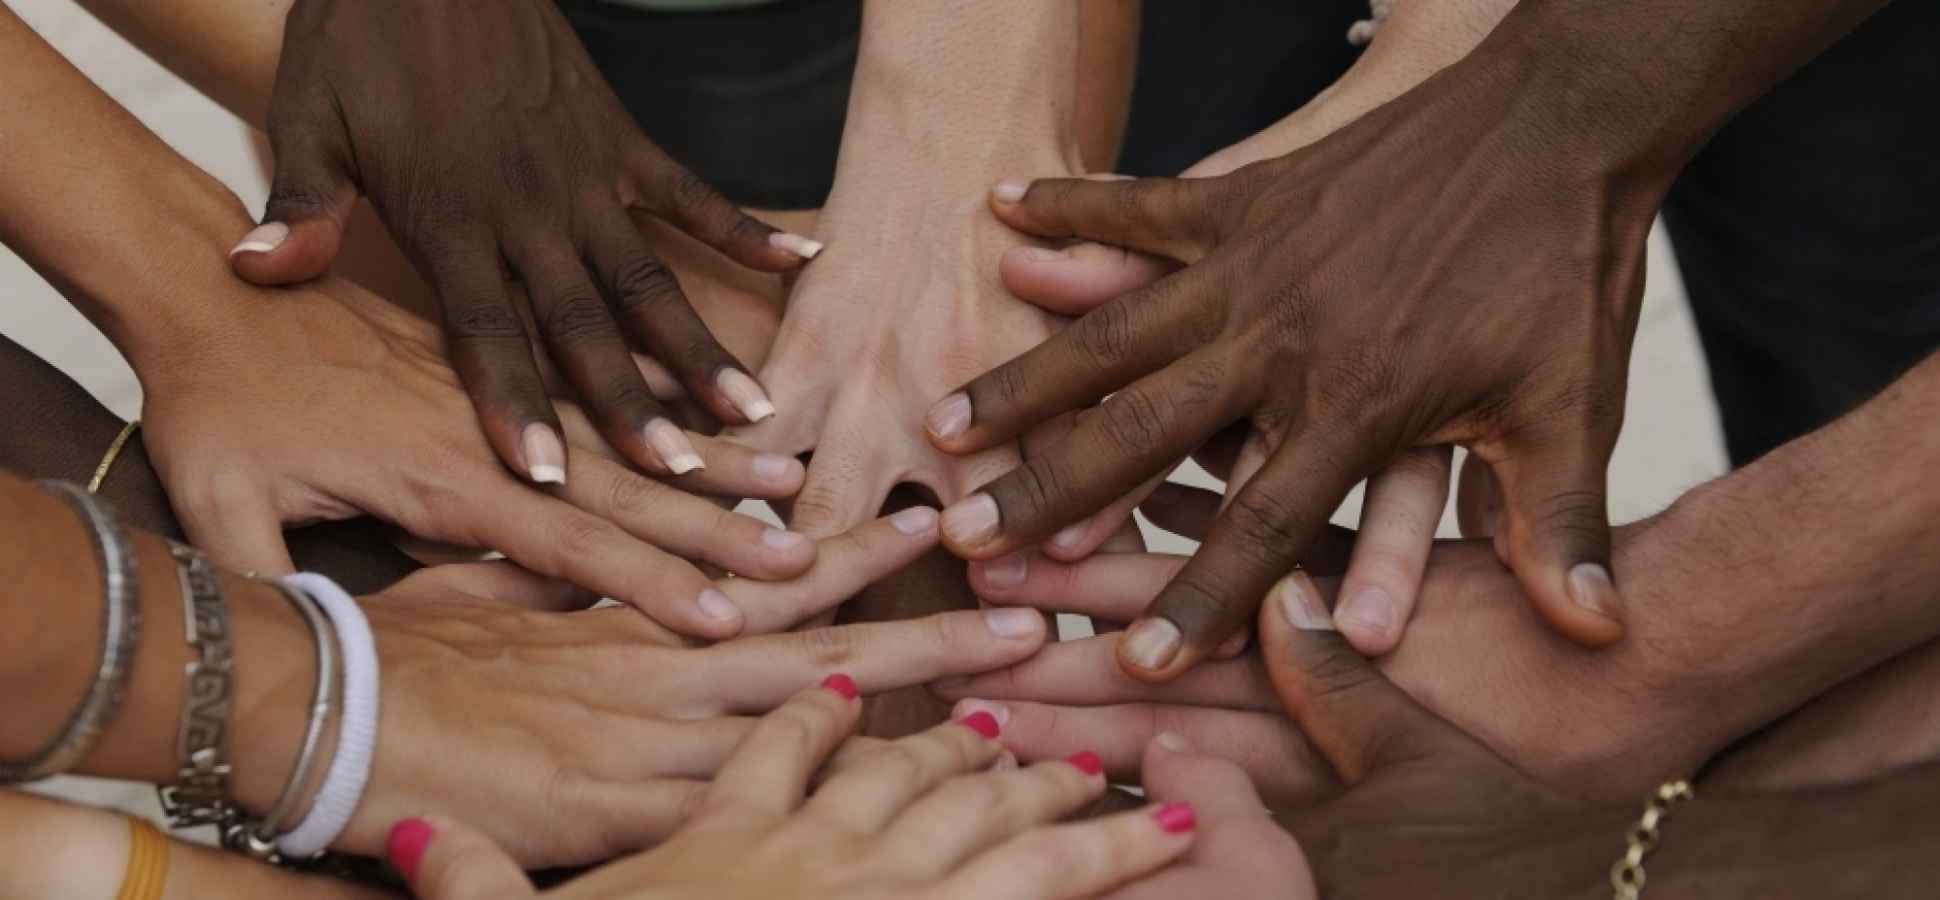 PwC Opened a Powerful Discussion About Race Relations in the United States